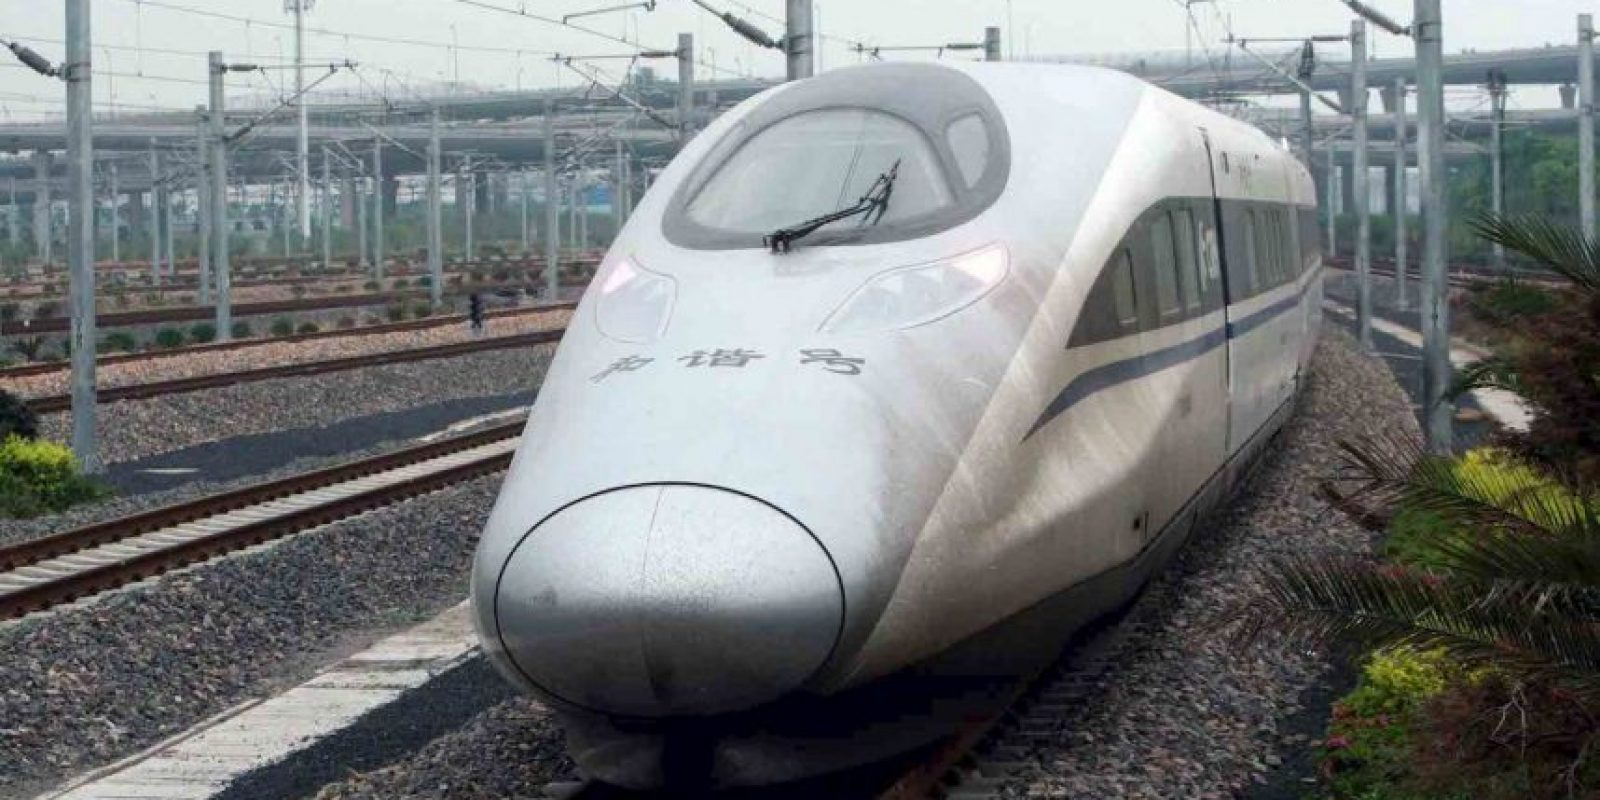 China Railways CRH380A- Es el segundo tren más rápido. Foto: Getty